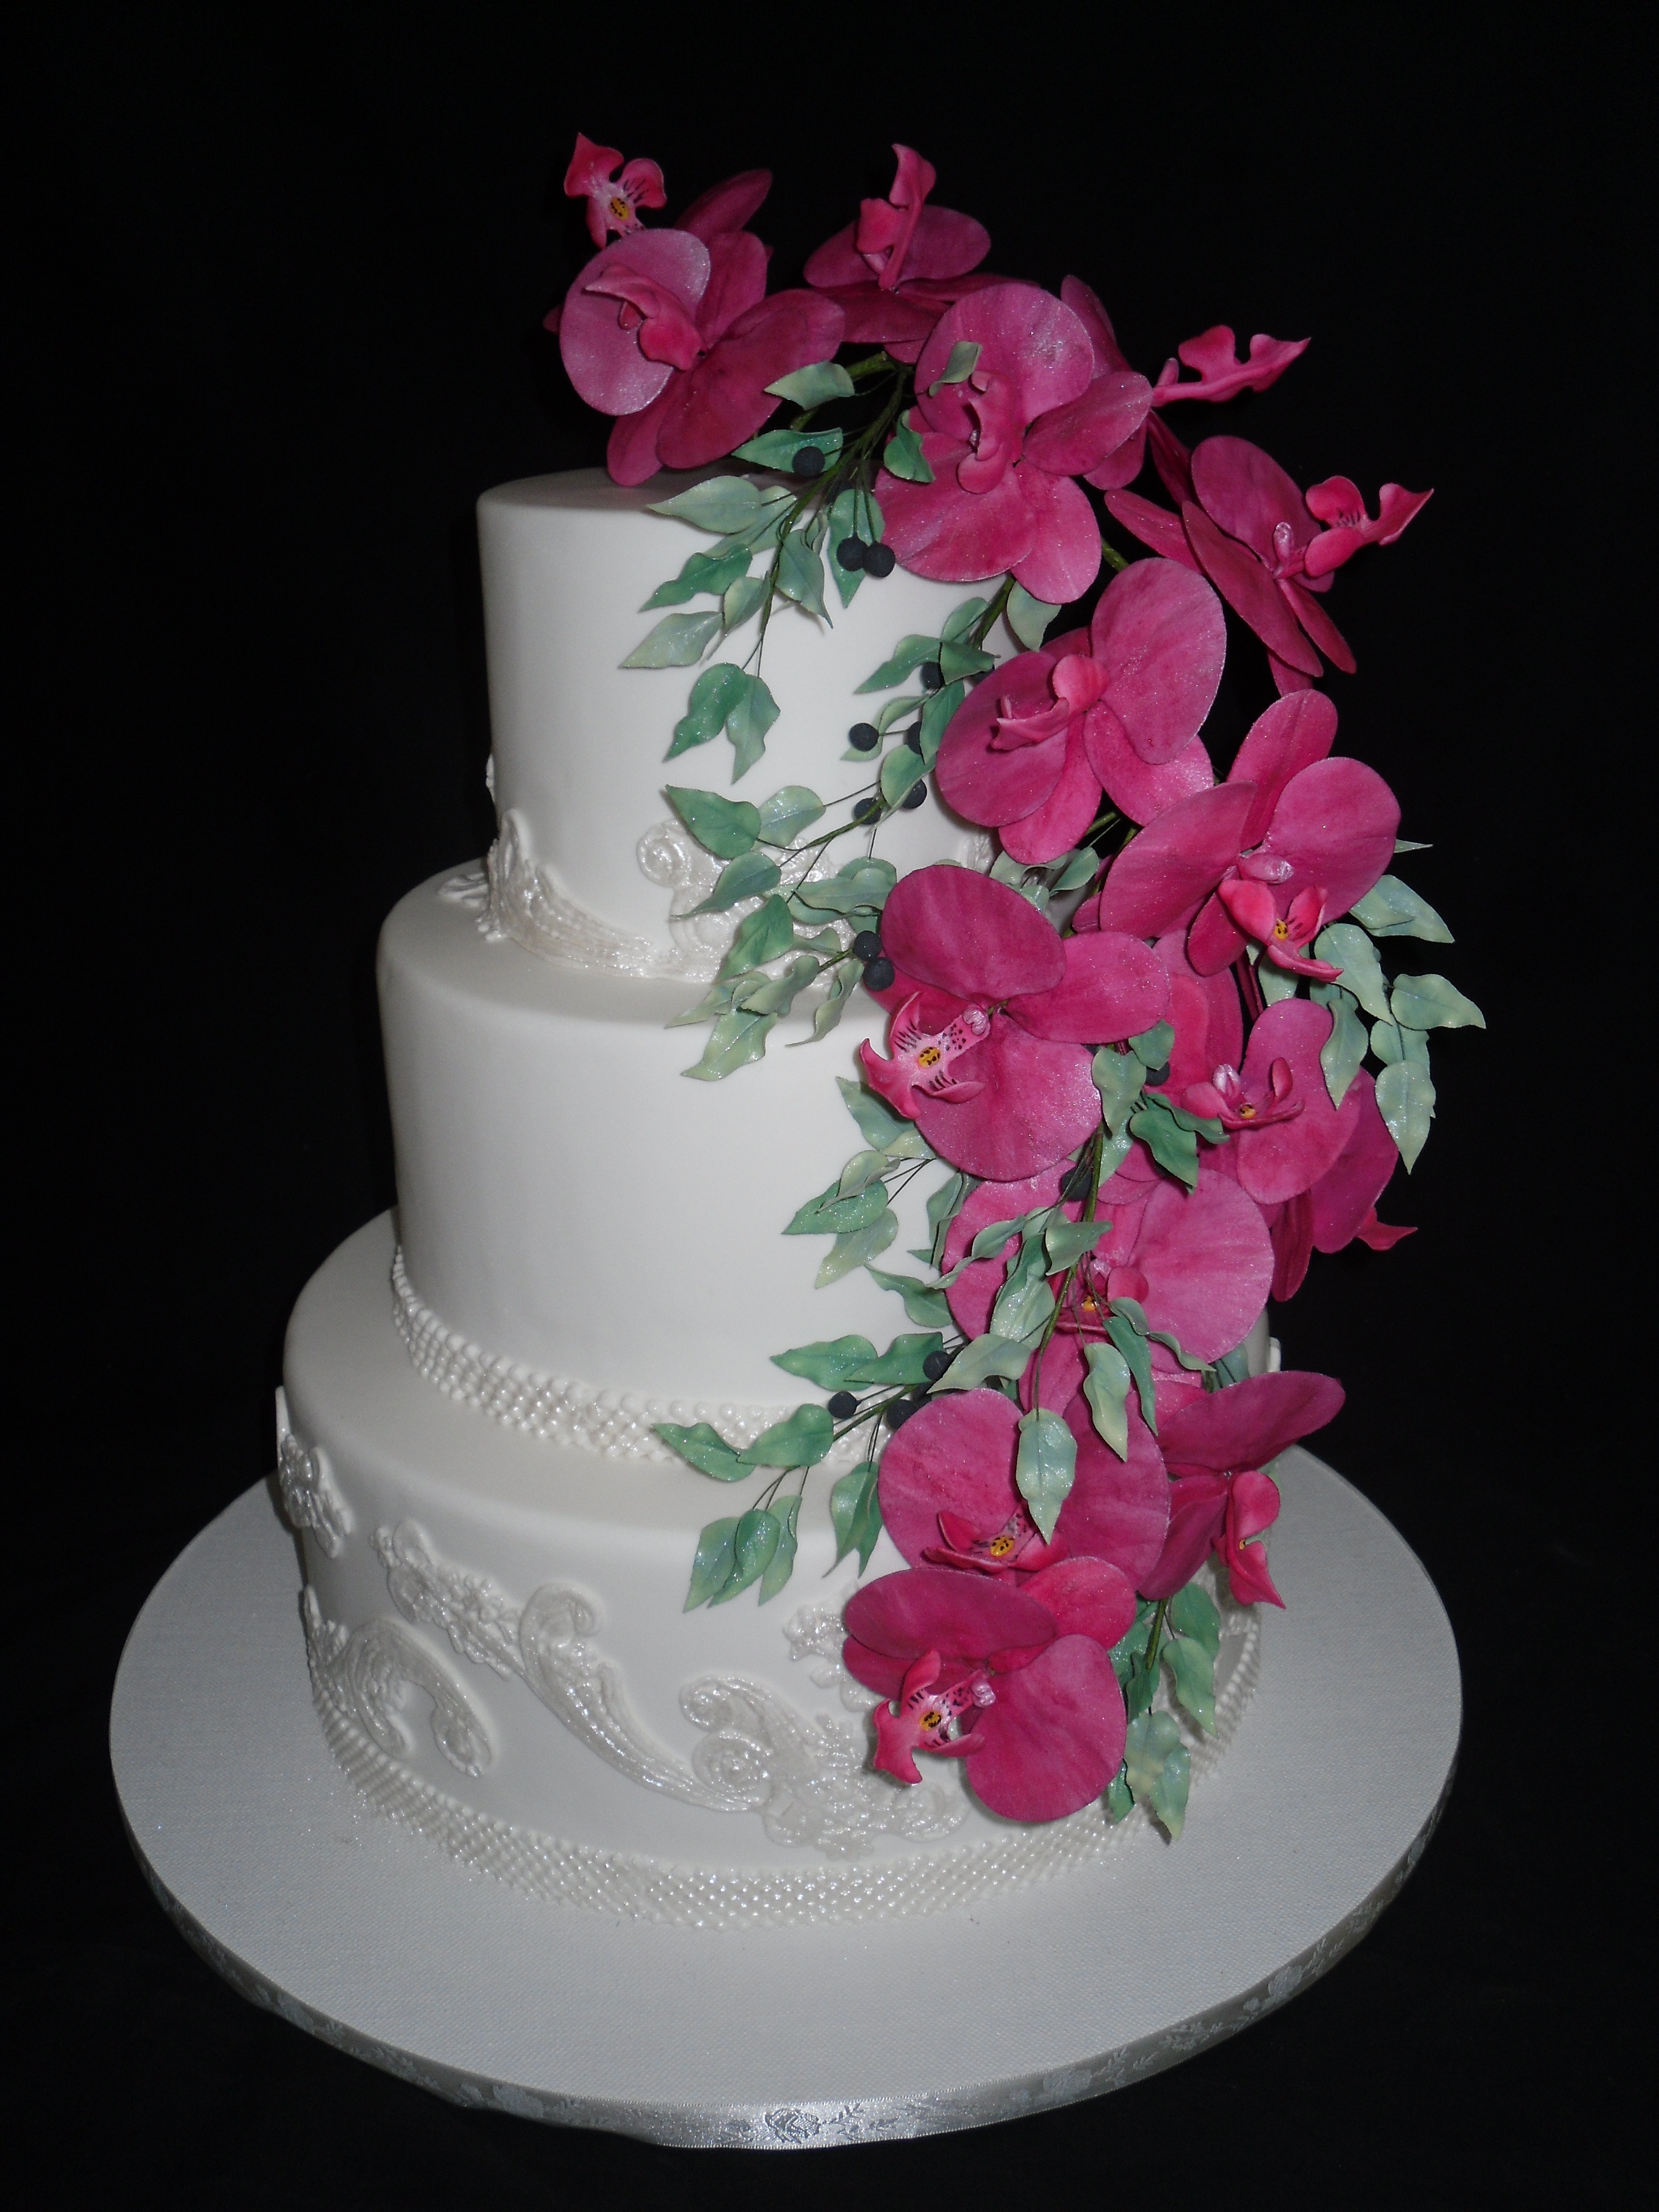 Pink Flowers Wedding Cake Wel e to Cindys Cakes